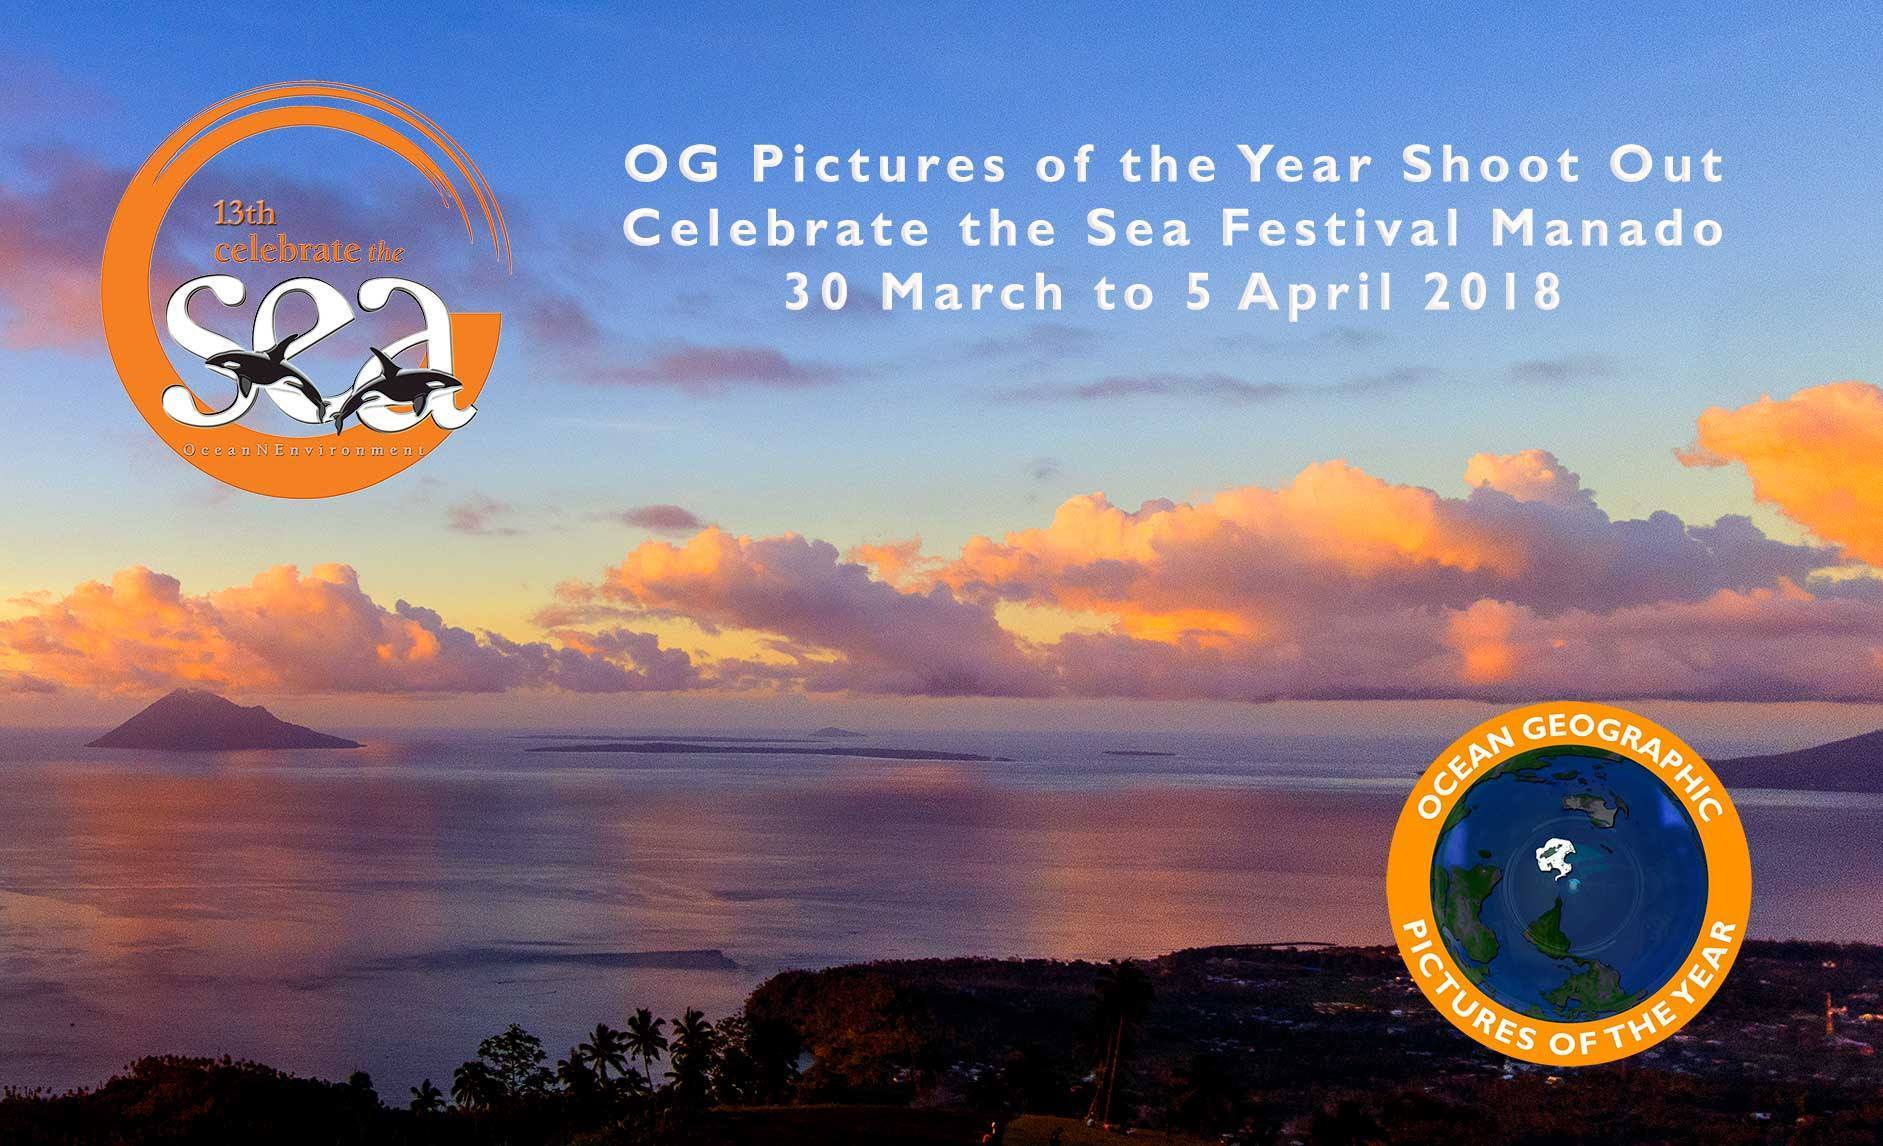 Celebrate the Sea Shootout & Sylvia Earle Manado 2018